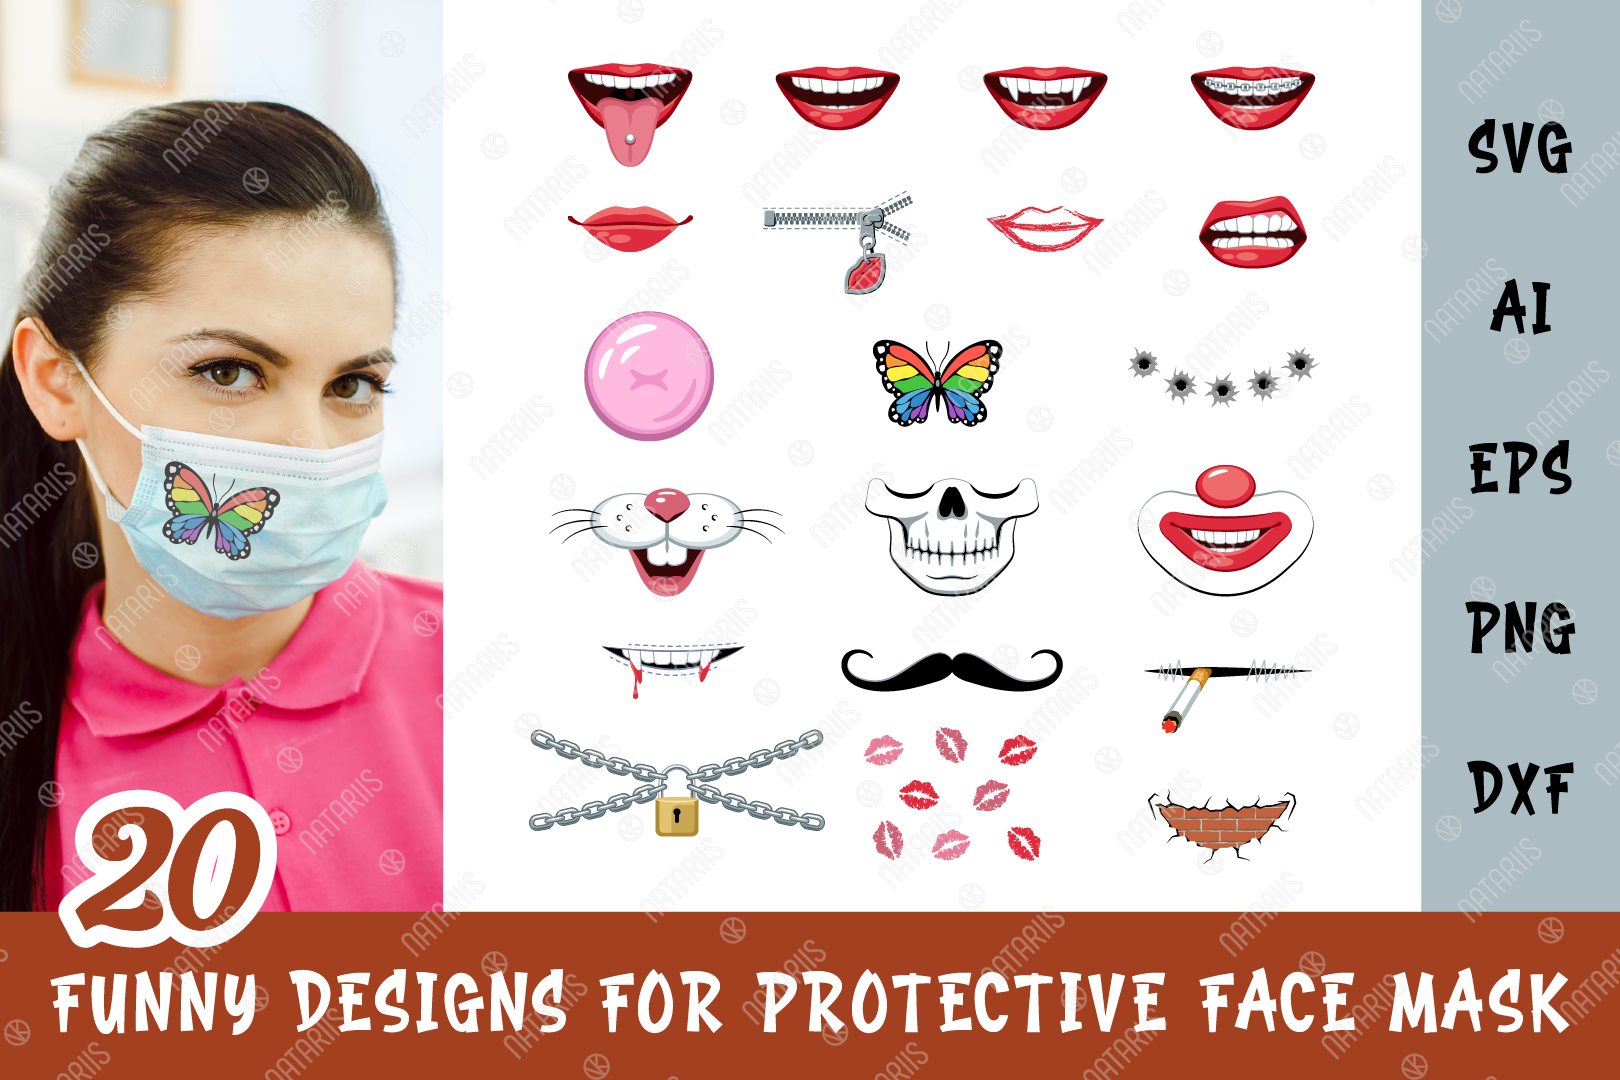 Download Free 20 Funny Designs For Face Mask Graphic By Natariis Studio for Cricut Explore, Silhouette and other cutting machines.